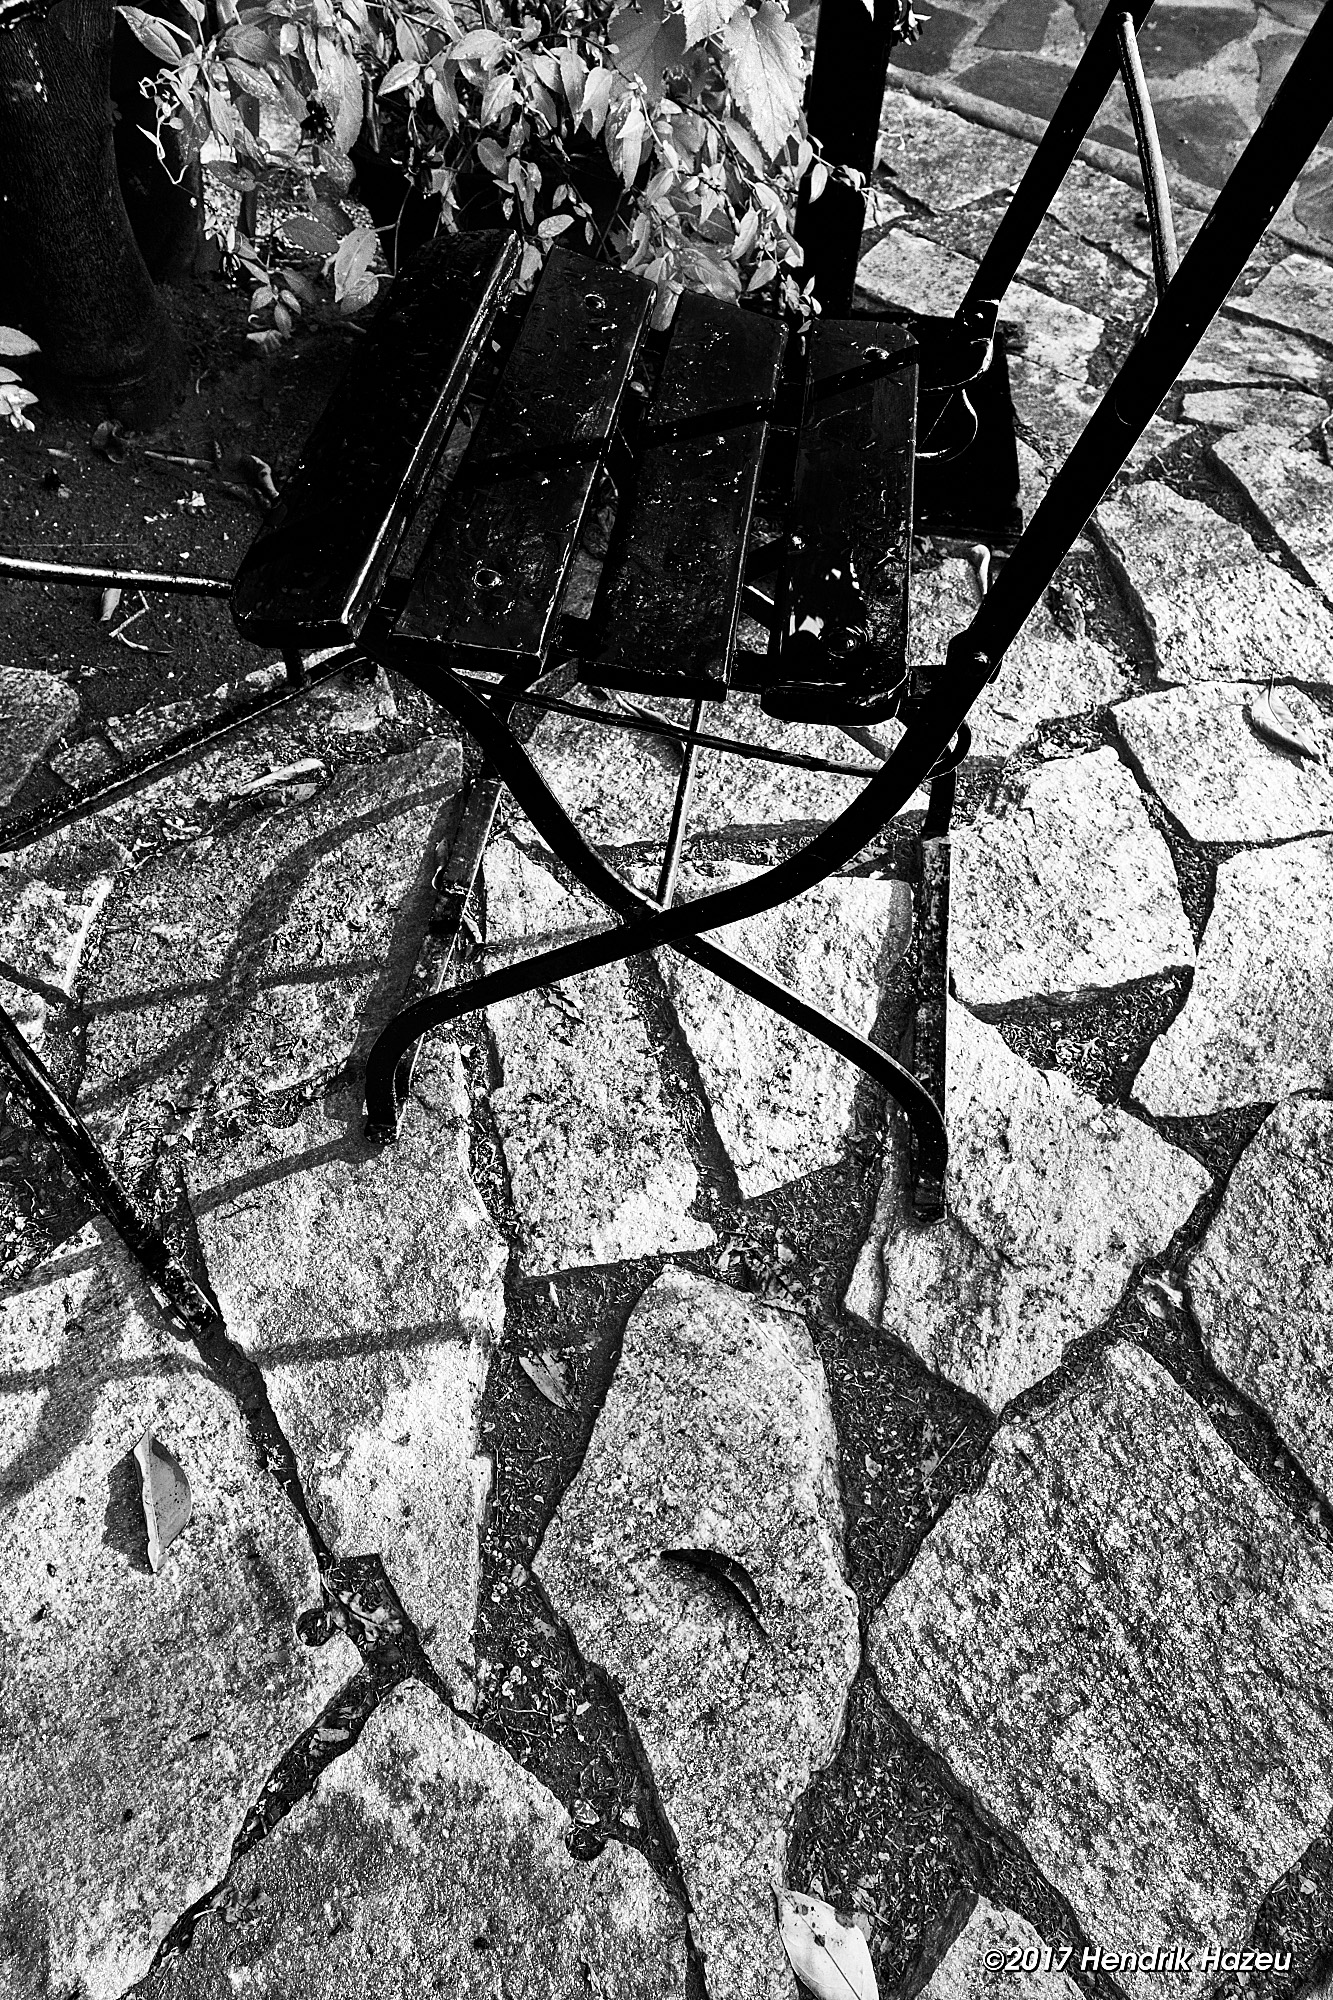 Red Chair on Stone Patio, XF 16-55/2.8 WR @16mm, X-T2, CO 10 with modified BW-15 Style